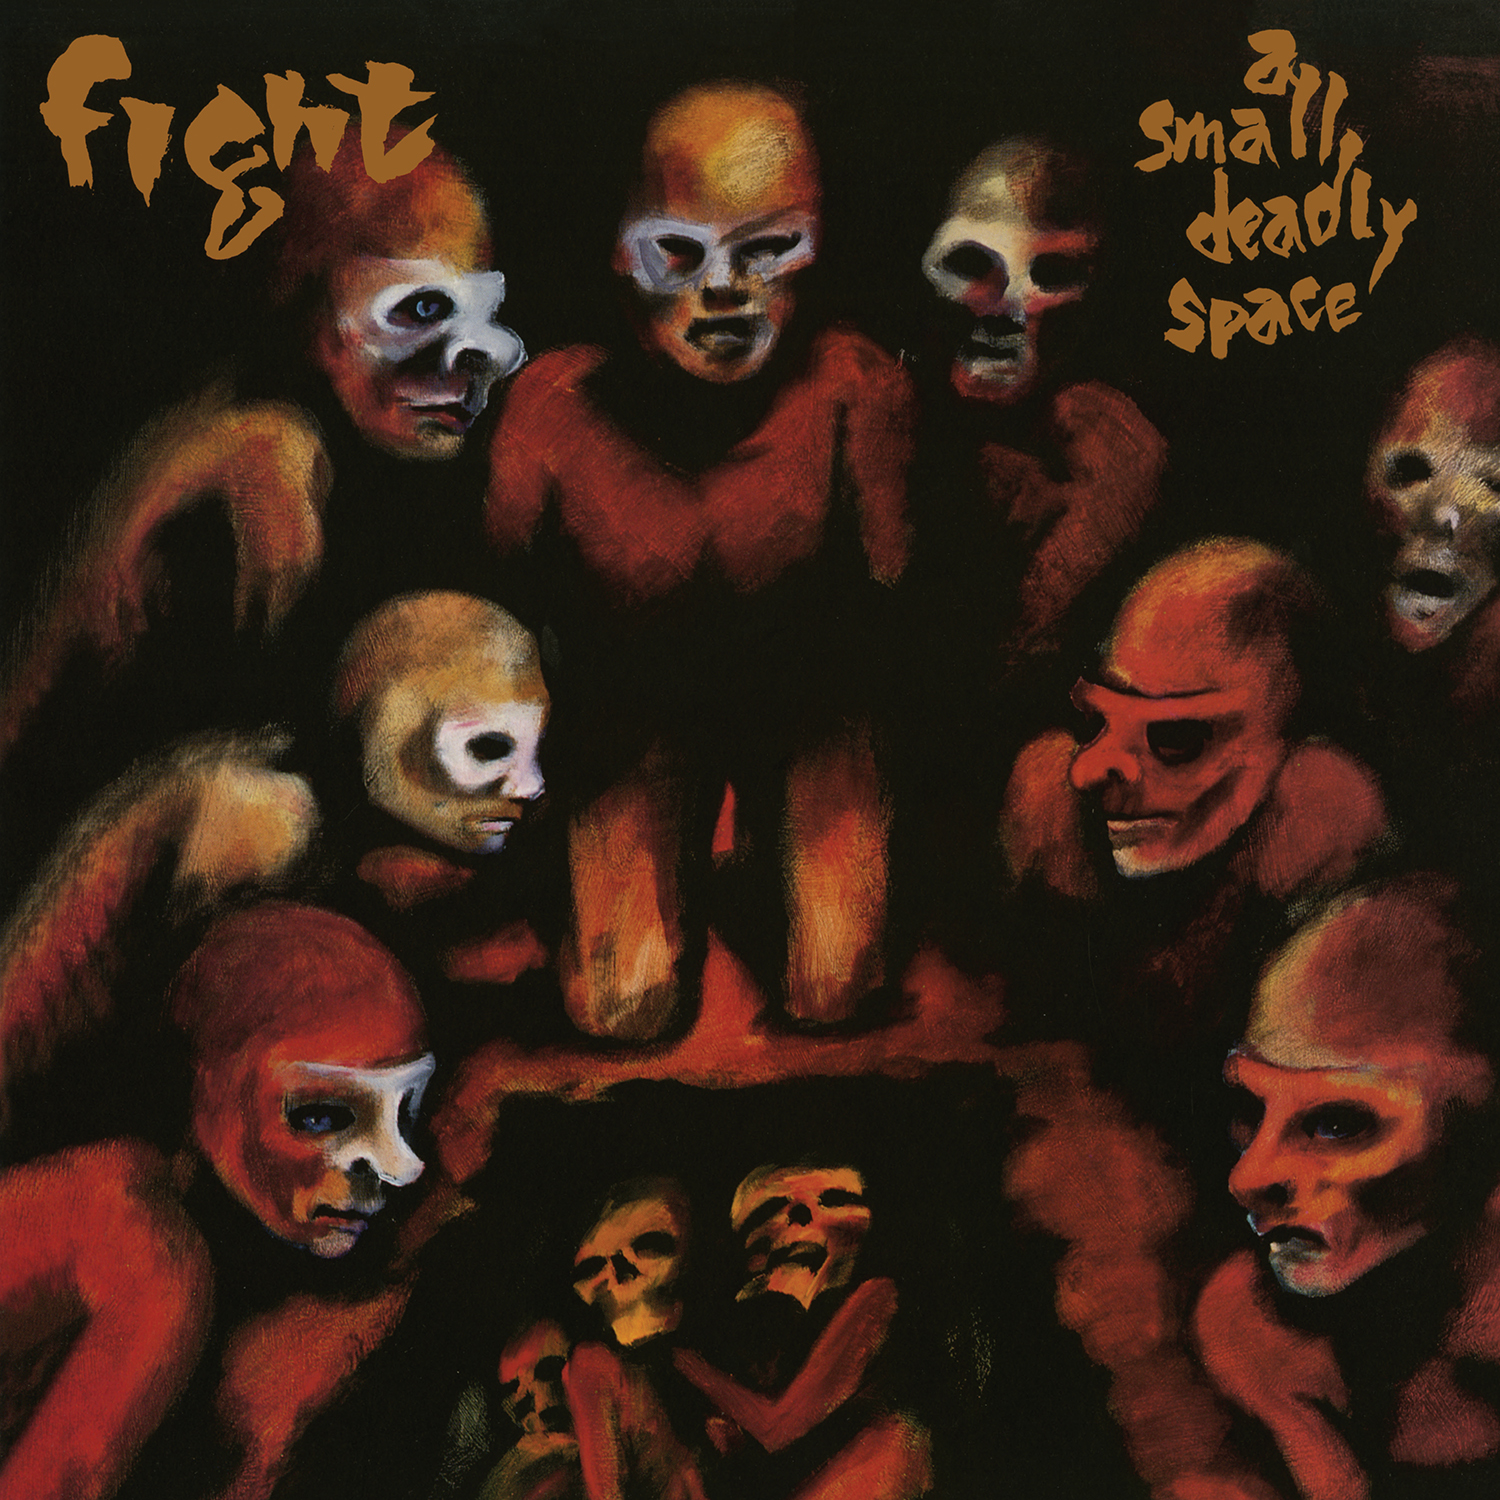 Fight - Small Deadly Space [RSD Drops Aug 2020]